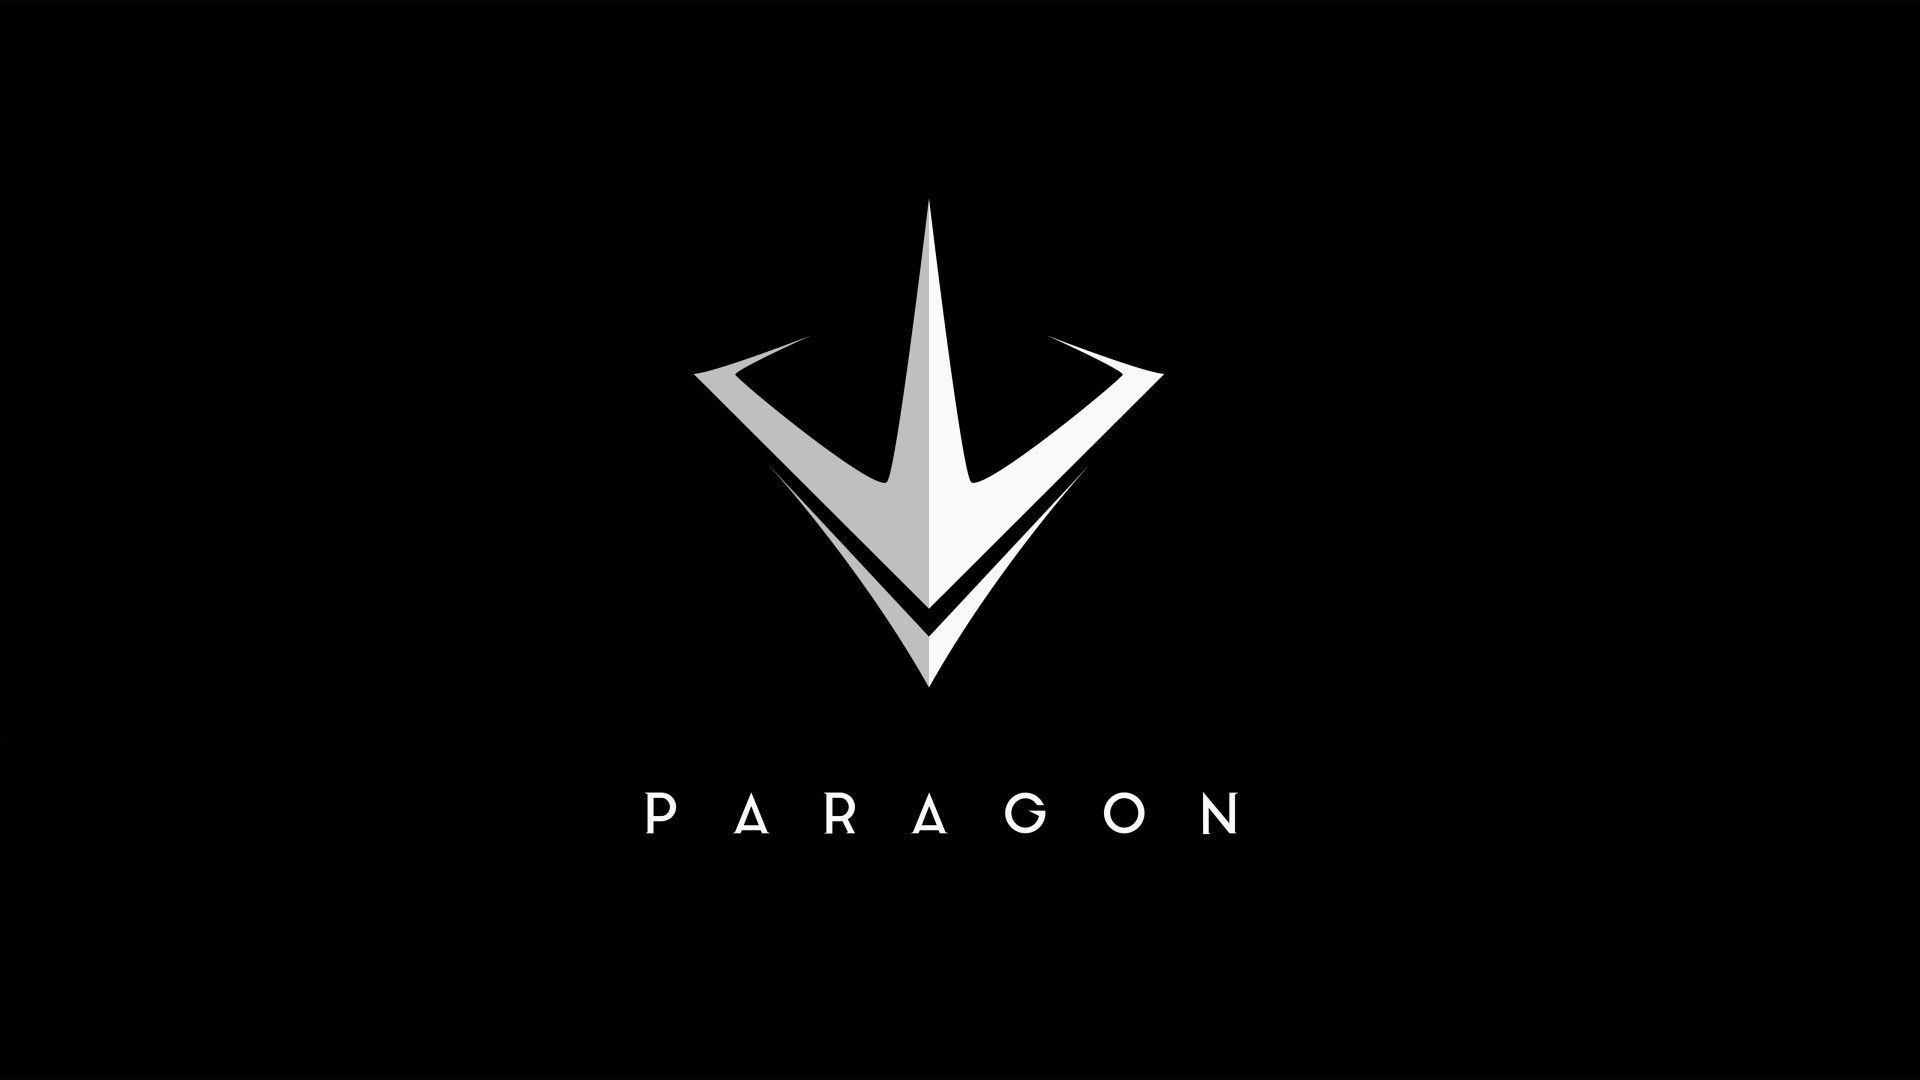 Video Game - Paragon  Logo Wallpaper